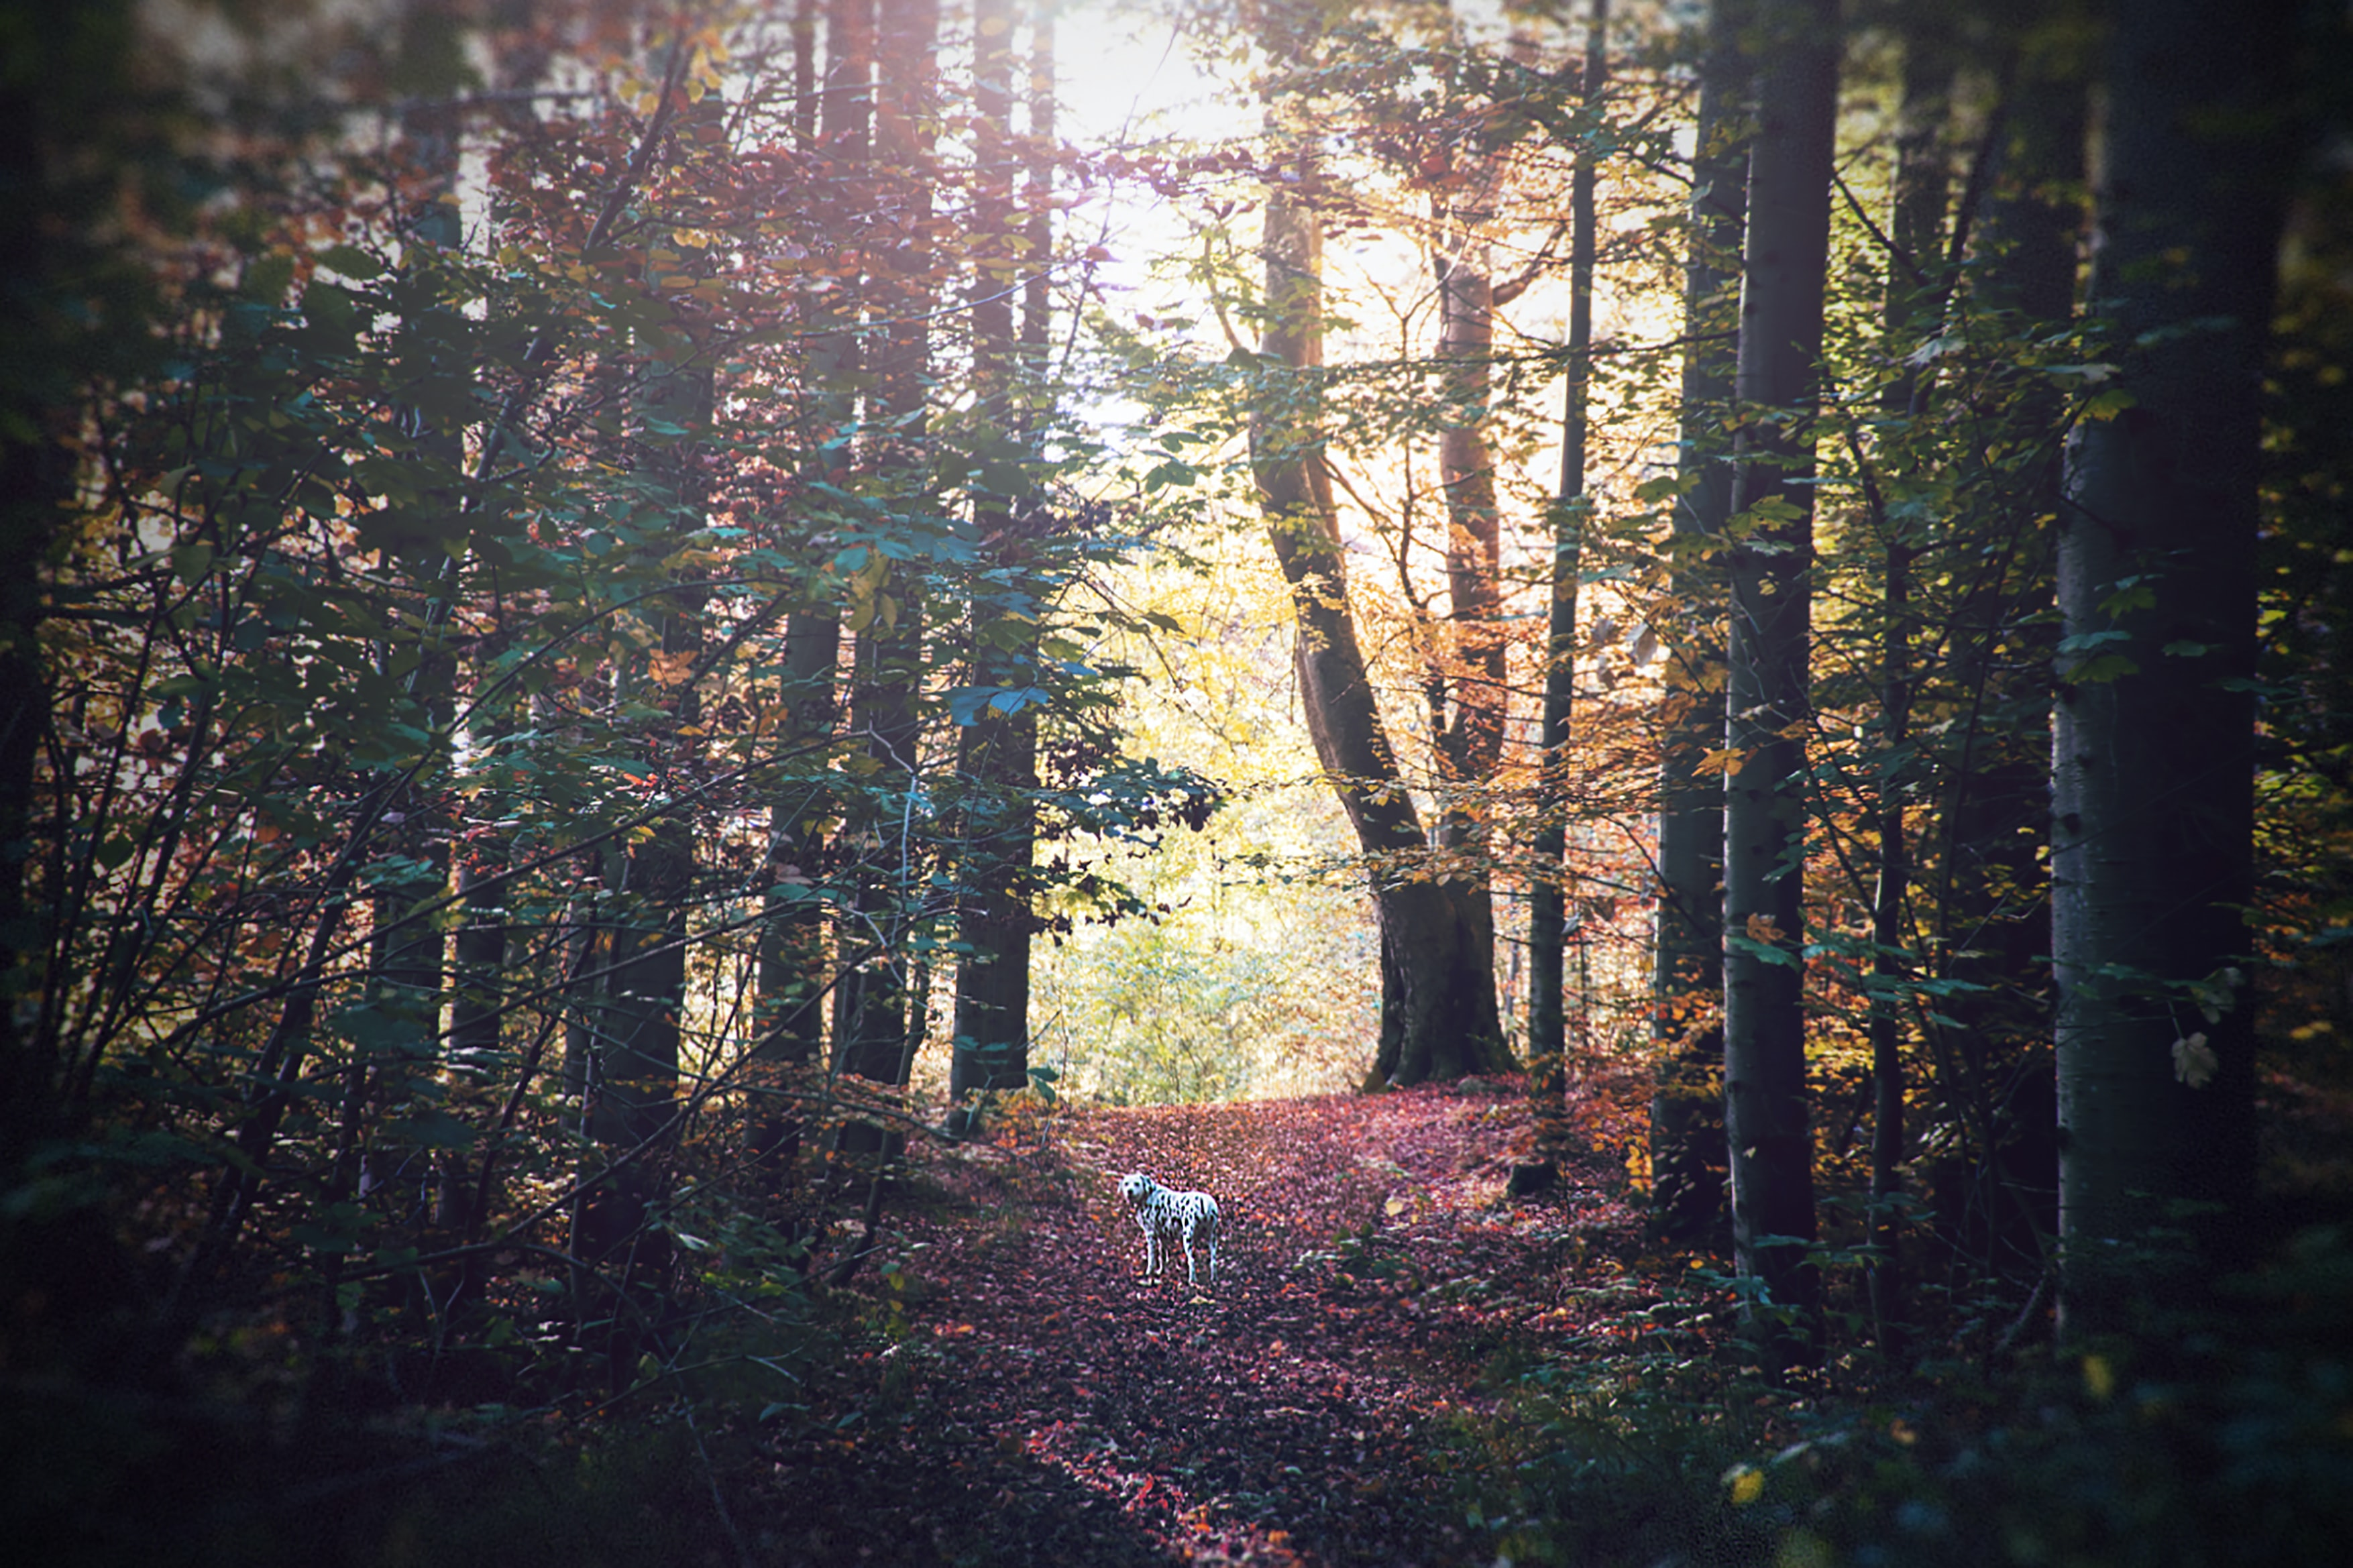 white dog on forest